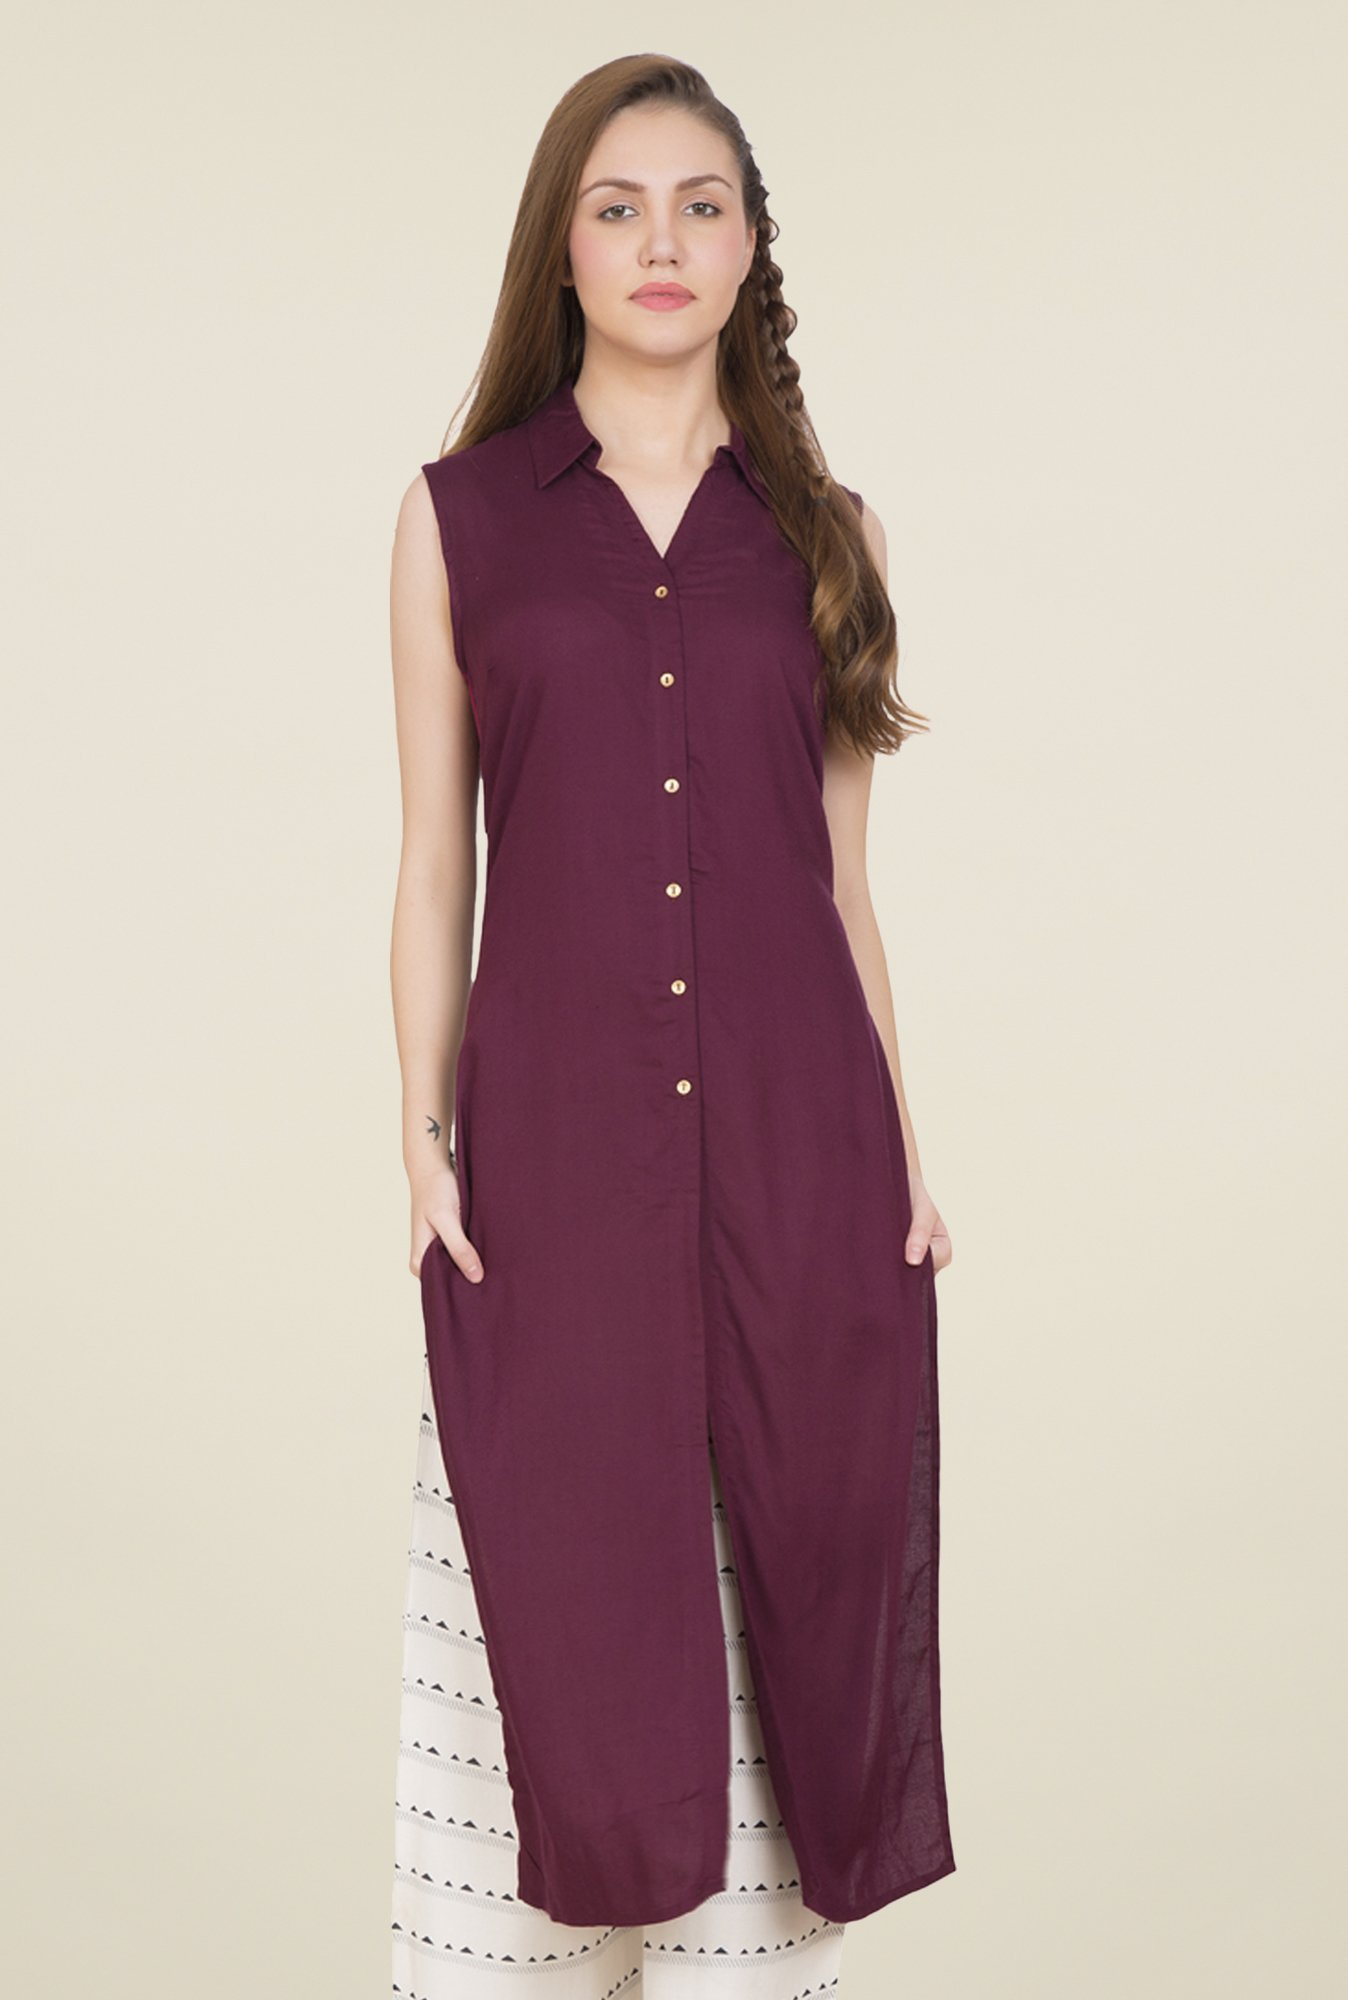 Desi Belle Purple Solid Kurti